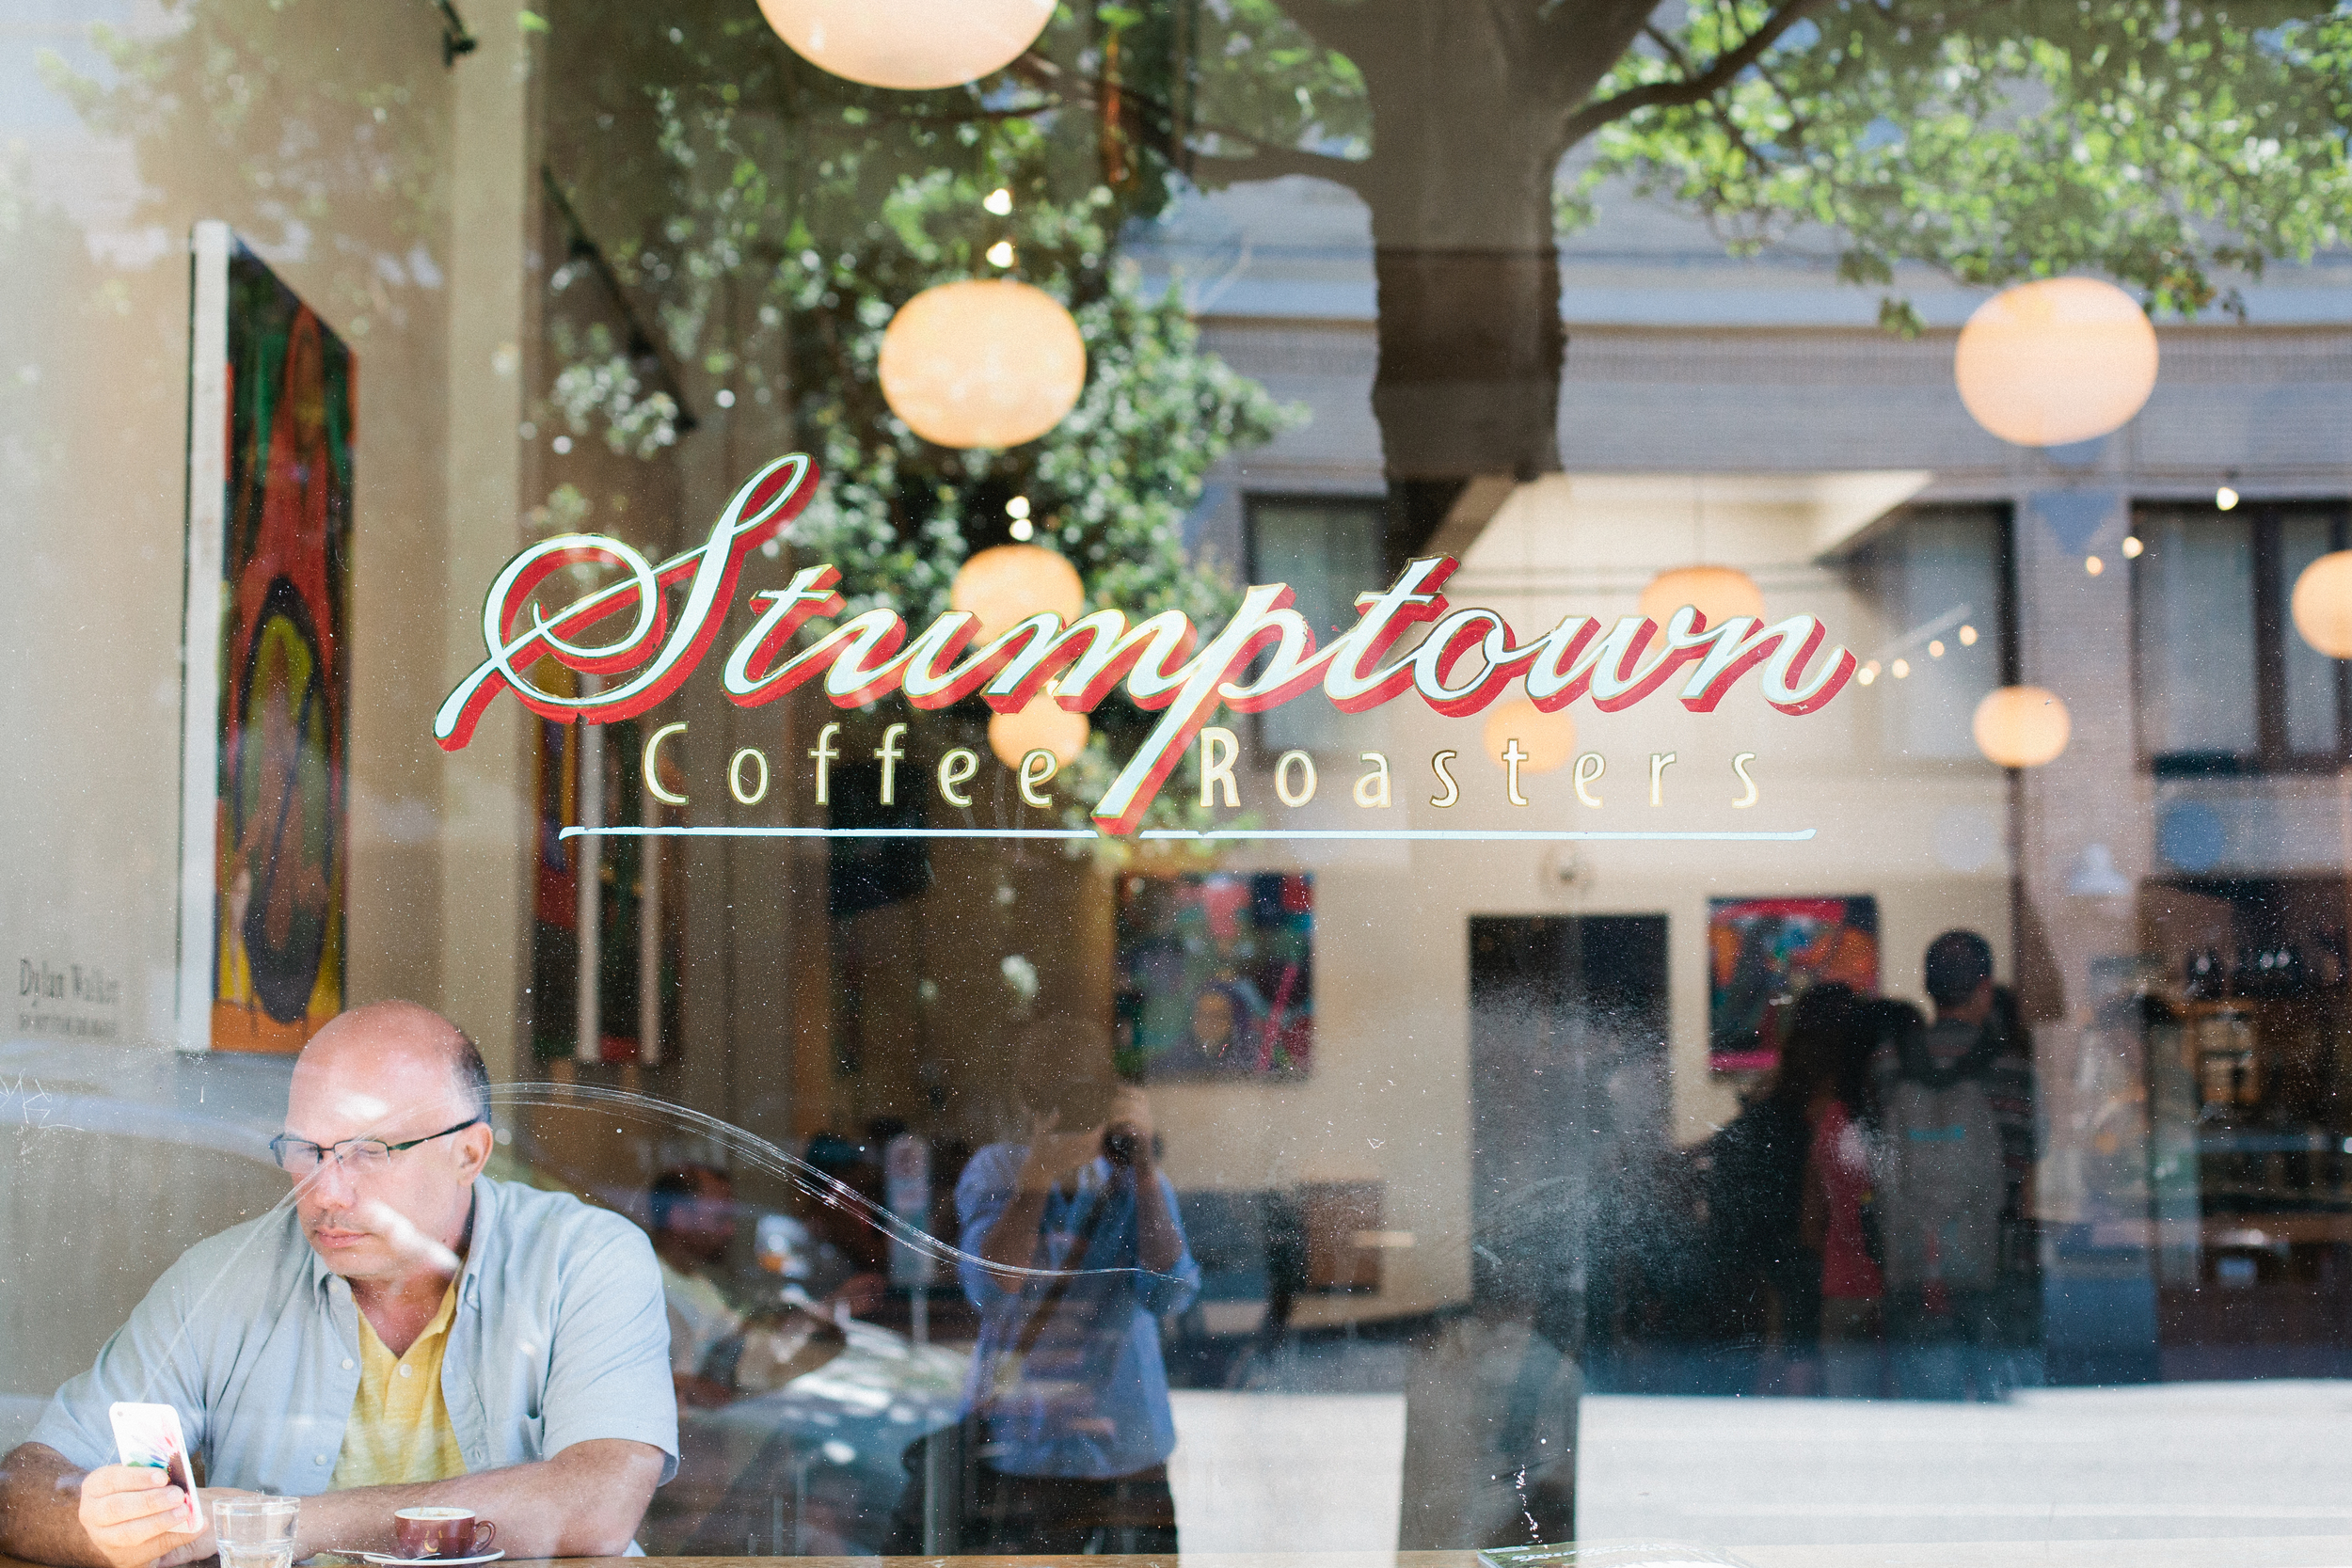 Stumptown Coffee Roasters Portland Oregon